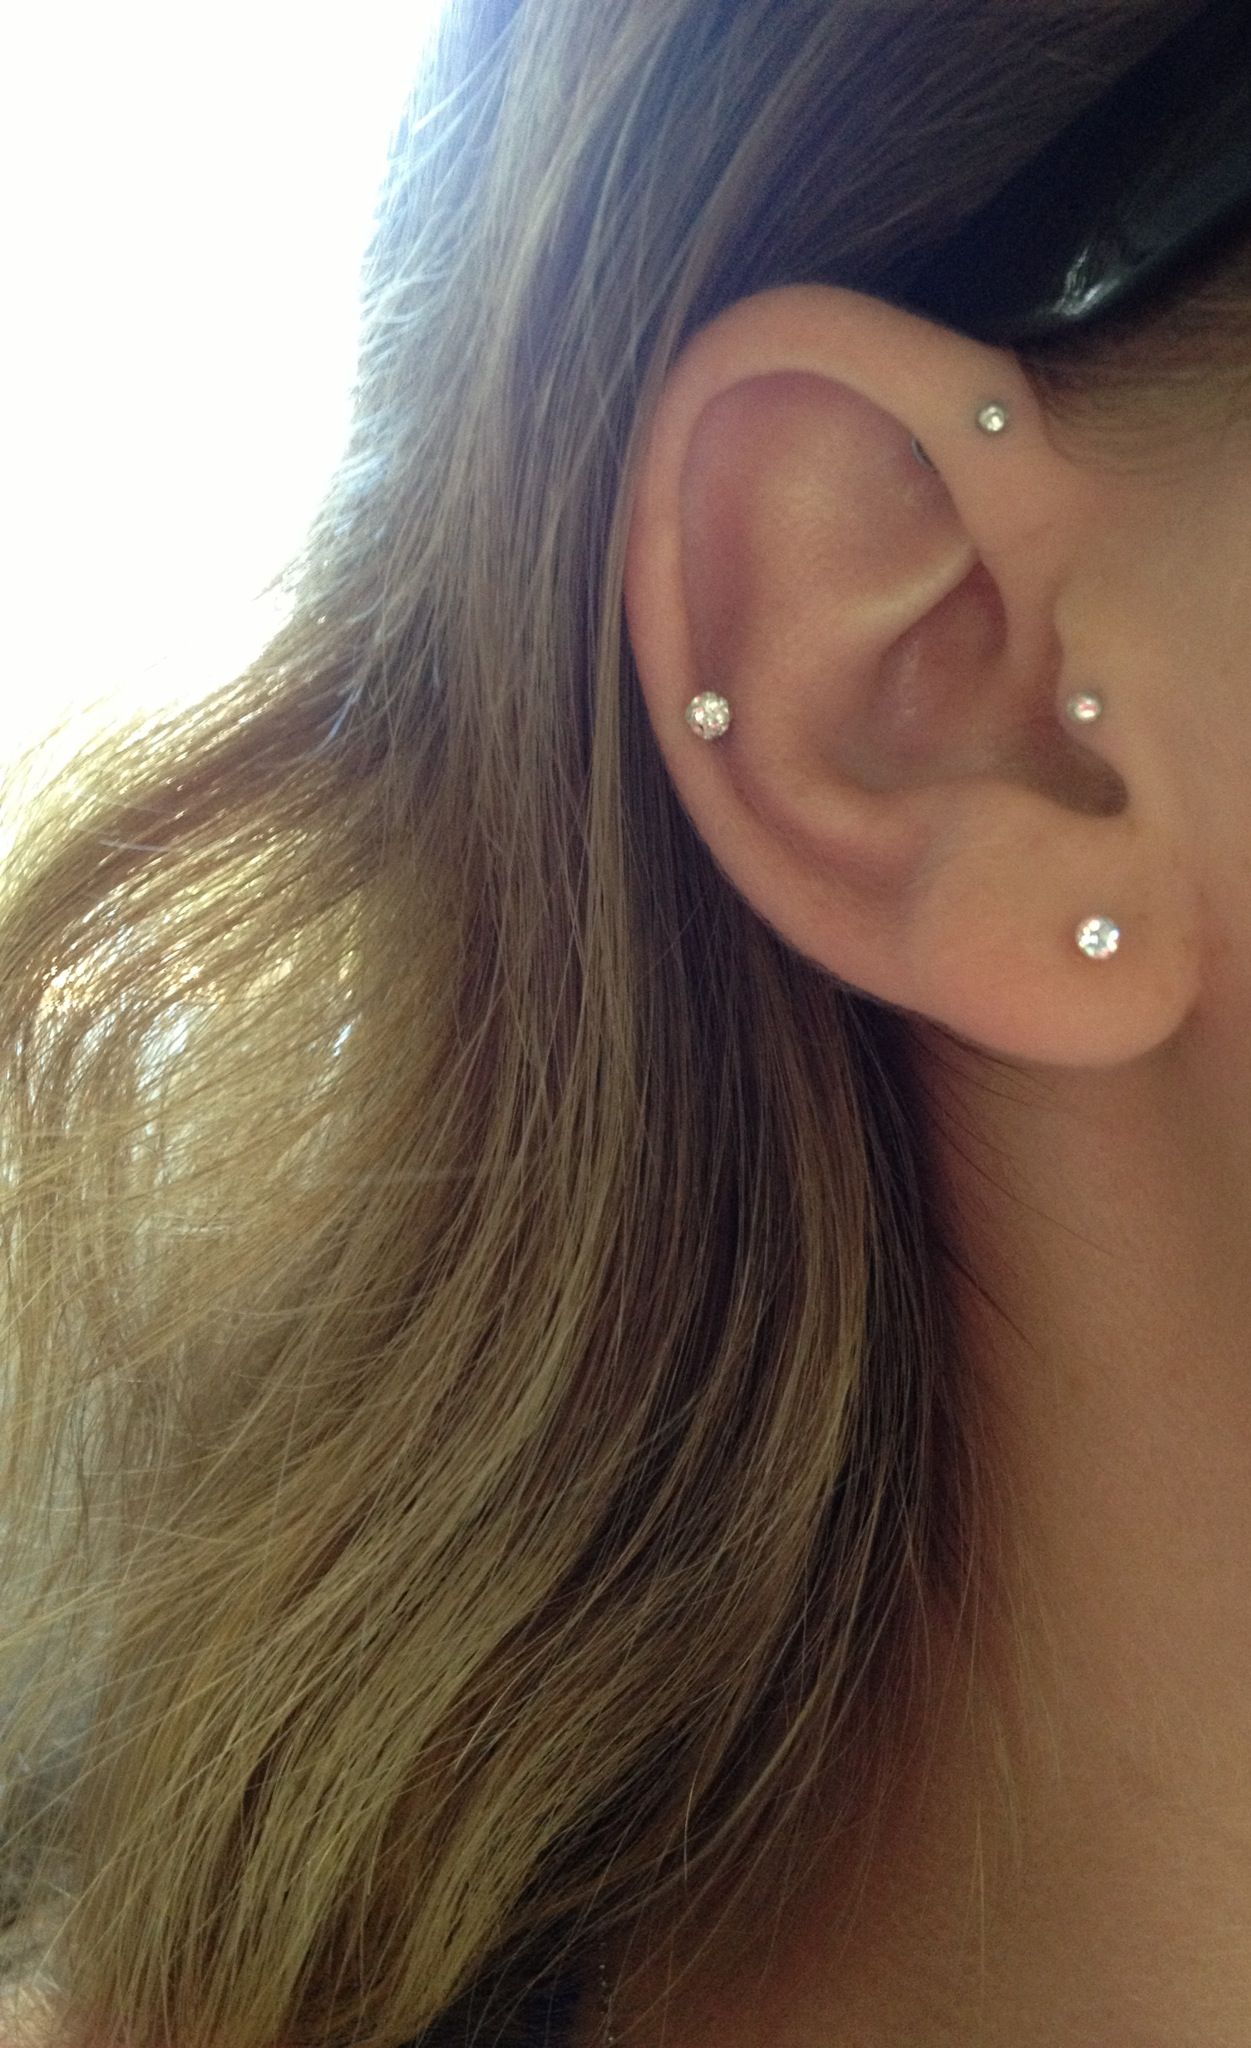 Pretty piercing ideas   unique and beautiful ear piercing ideas from minimalist studs to